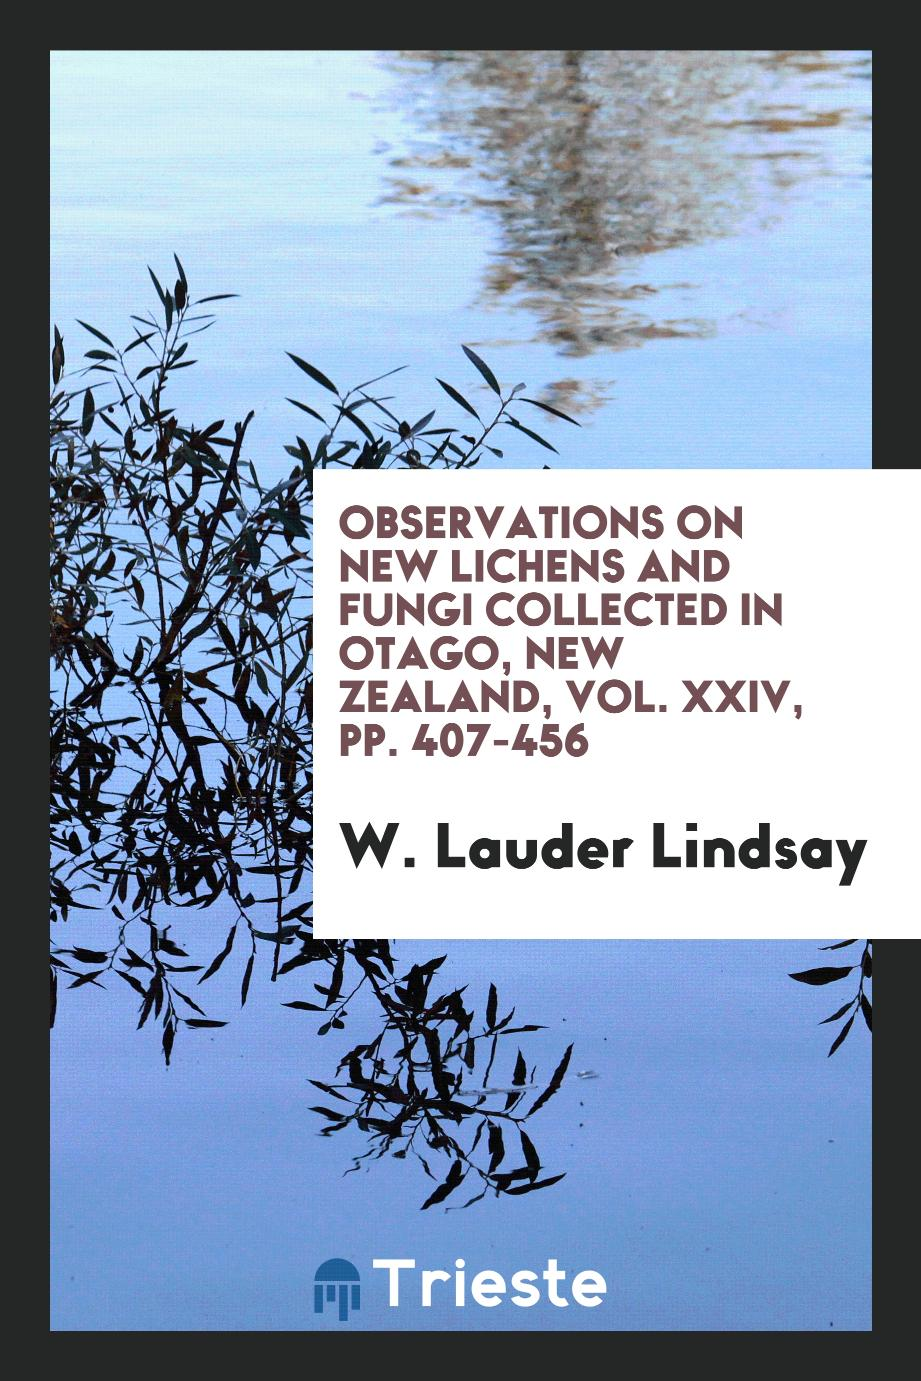 W. Lauder Lindsay - Observations on new lichens and fungi collected in Otago, New Zealand, Vol. XXIV, pp. 407-456